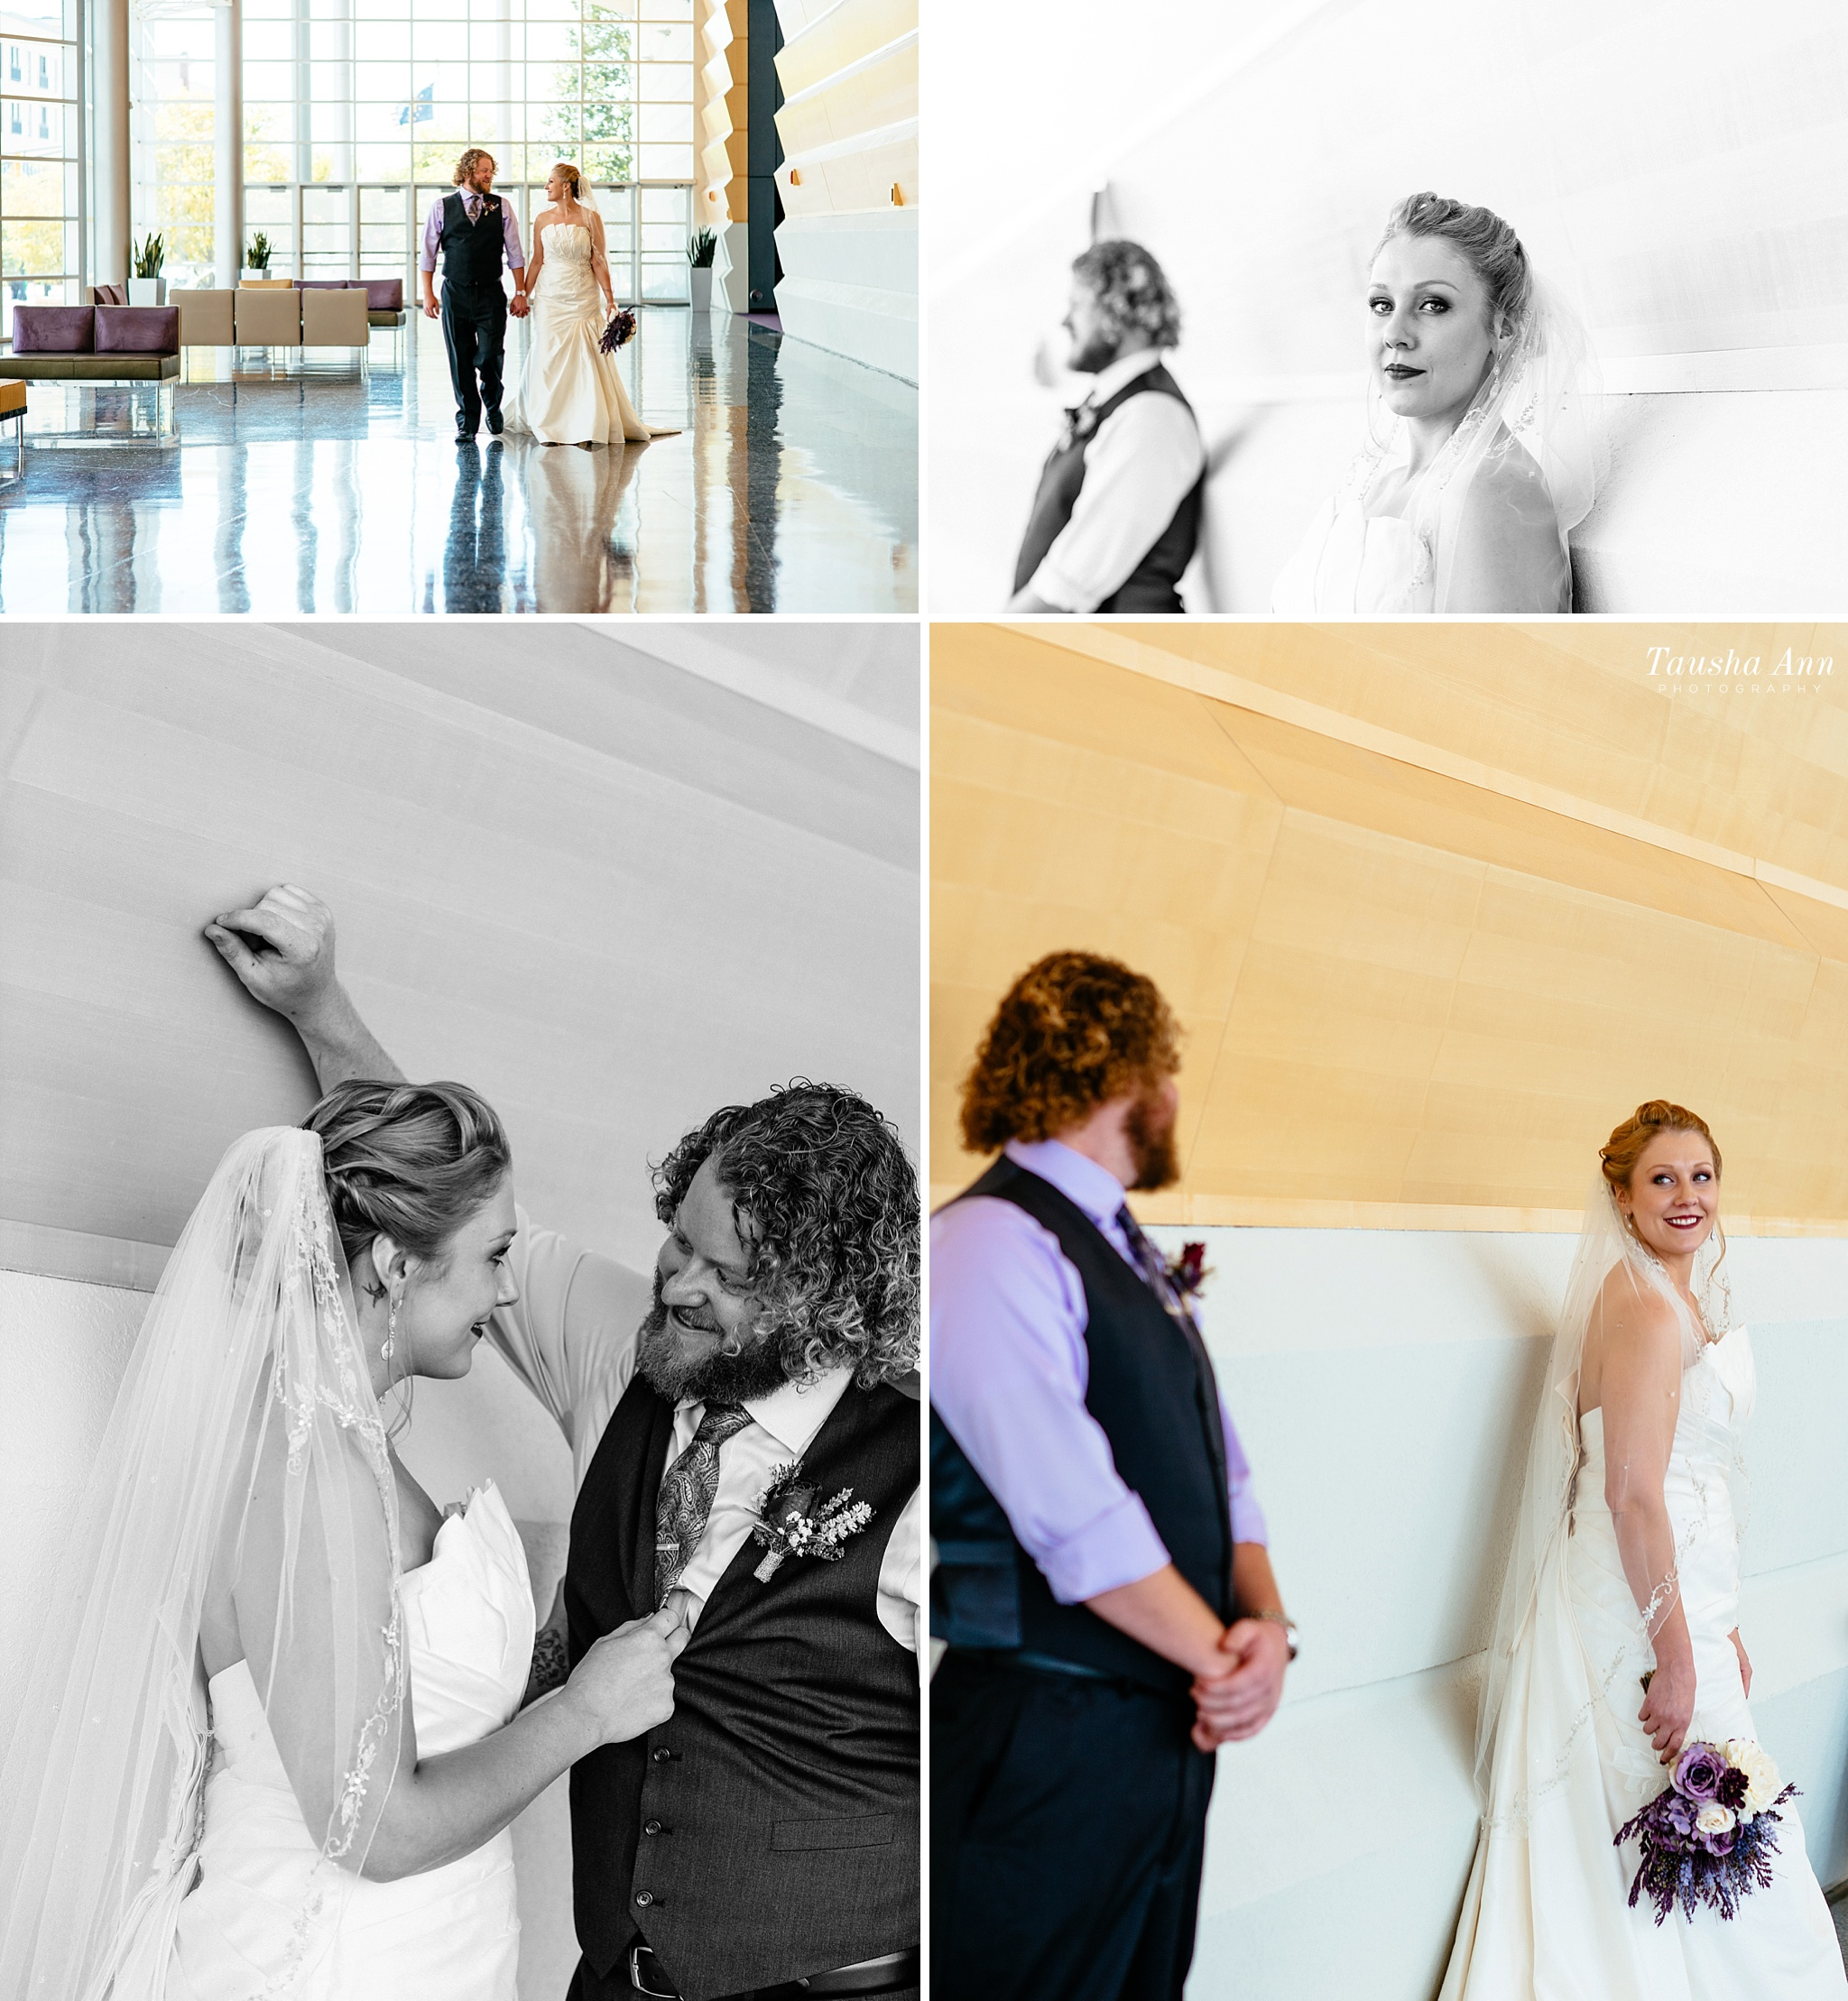 Bride and groom portraits against wall at Grand Wayne Convention Center